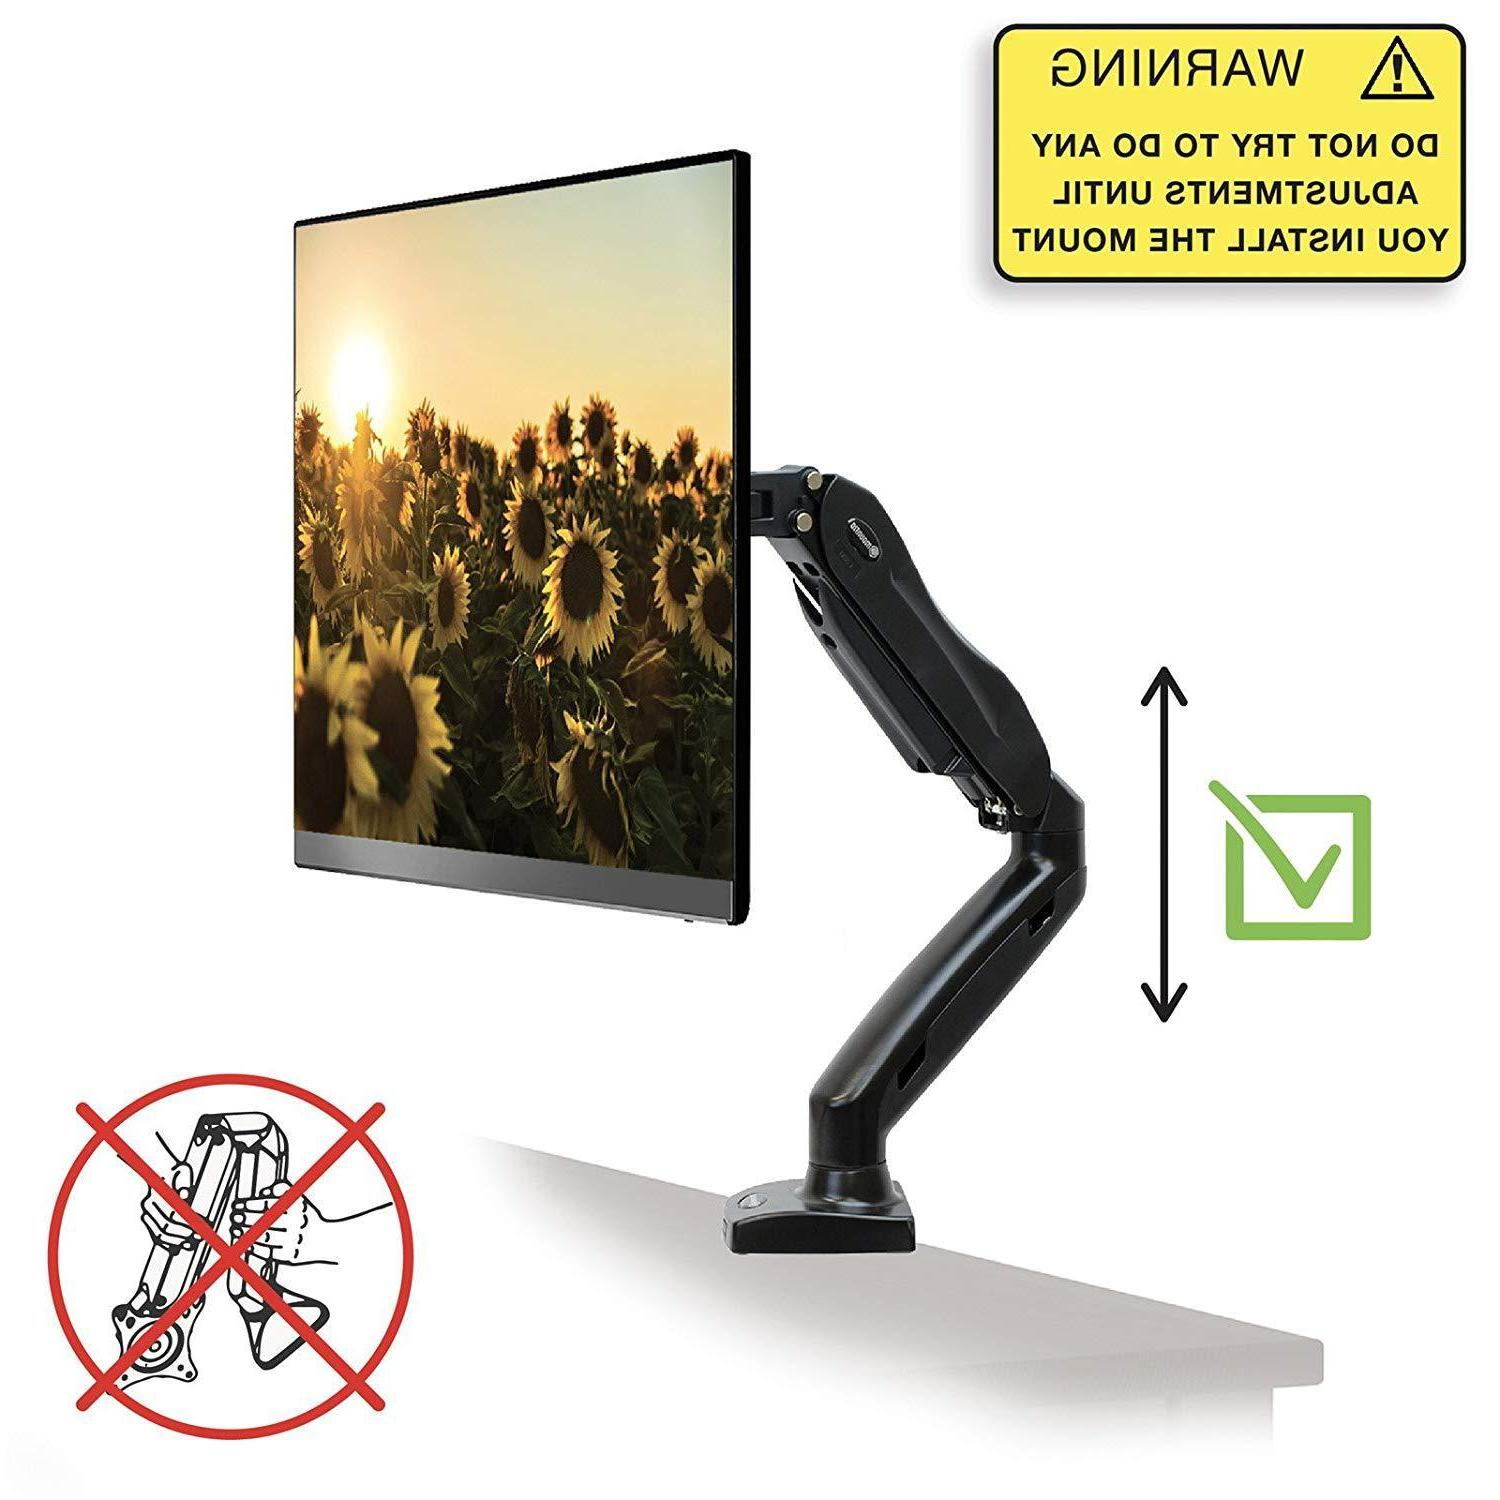 Full LCD Arm - Gas Spring Desk Mount Stand for Screens up to